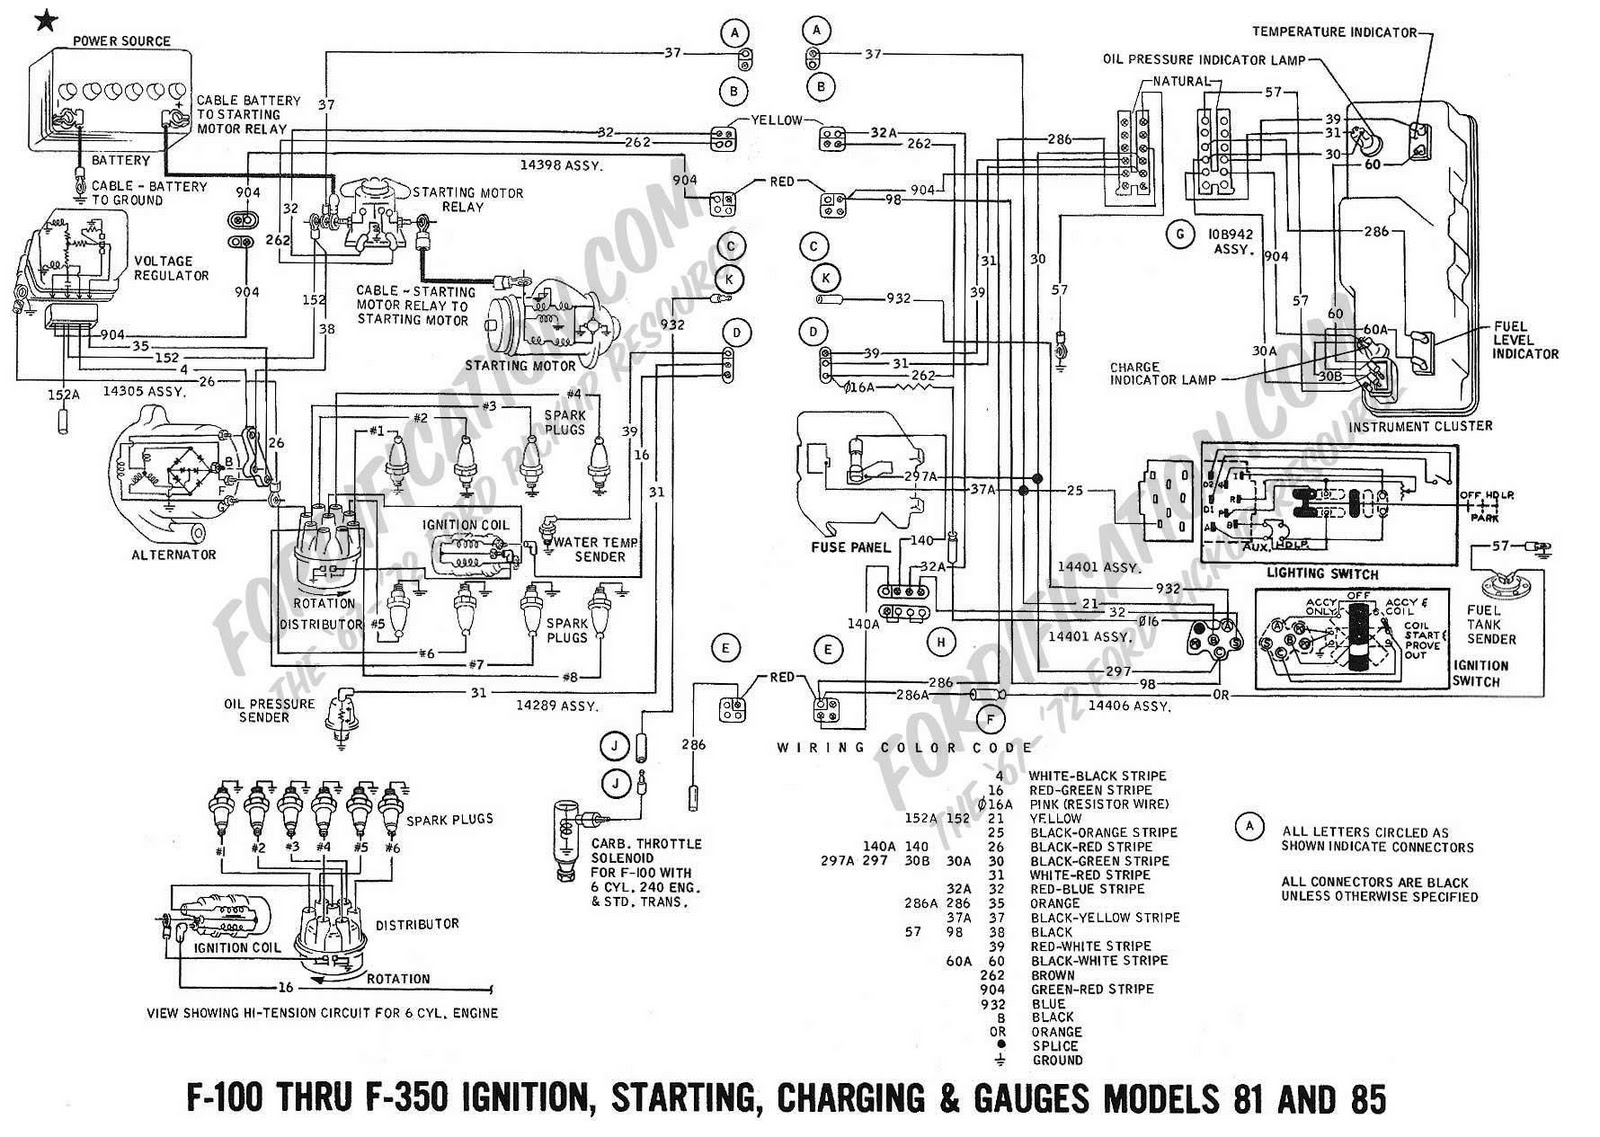 1963 ford ignition coil wiring wiring diagram explained rh 8 11 corruptionincoal org 63 corvette wiring diagram 1963 chevy impala wiring diagram [ 1600 x 1137 Pixel ]